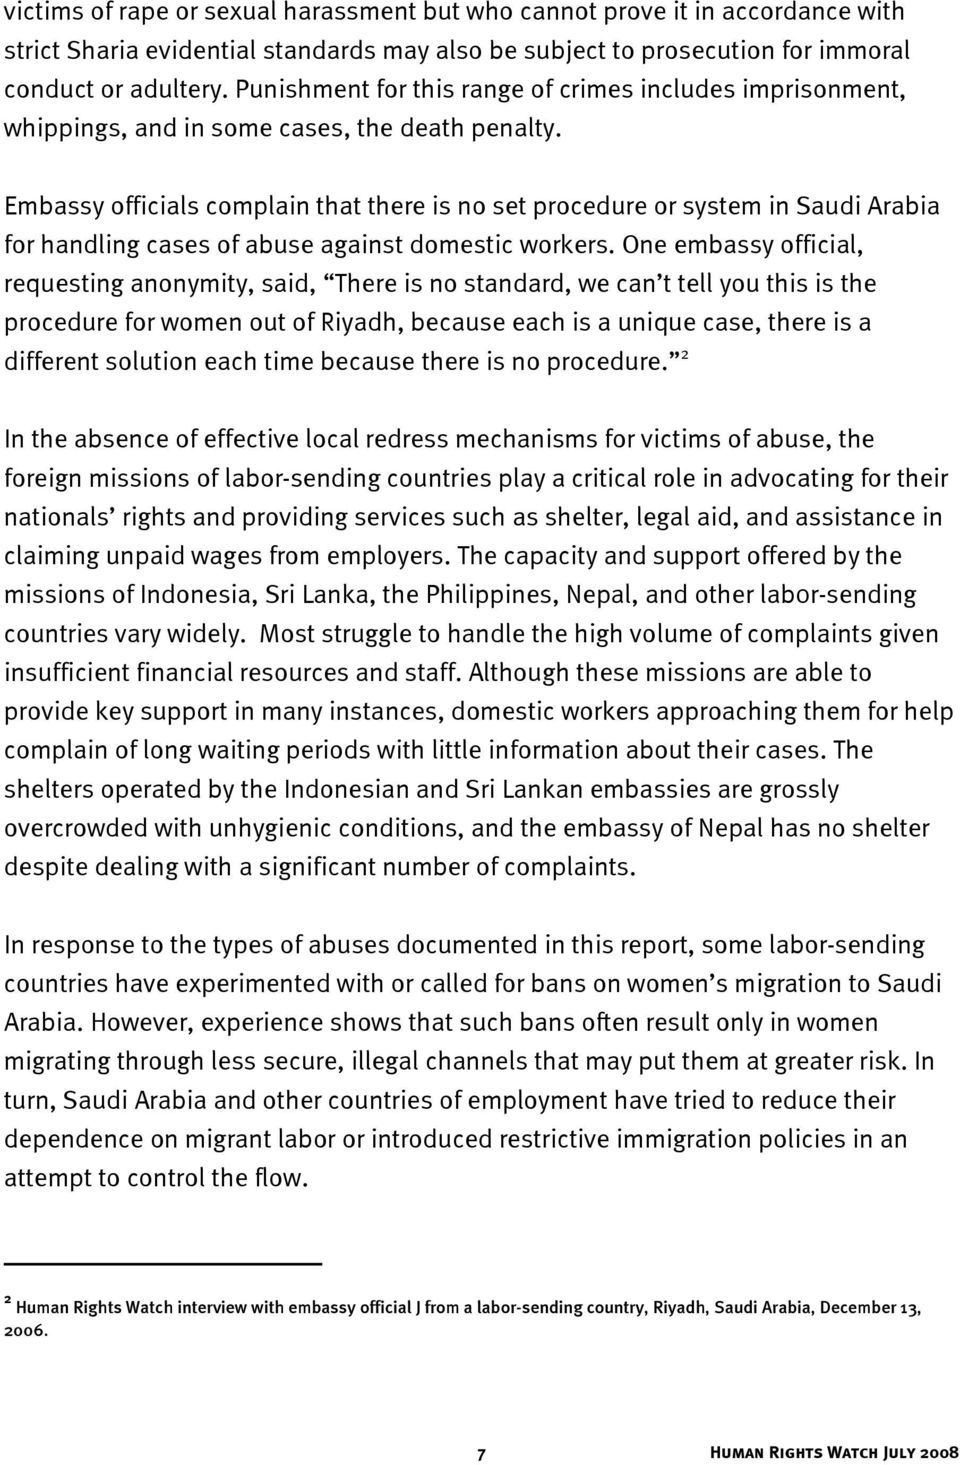 Embassy officials complain that there is no set procedure or system in Saudi Arabia for handling cases of abuse against domestic workers.